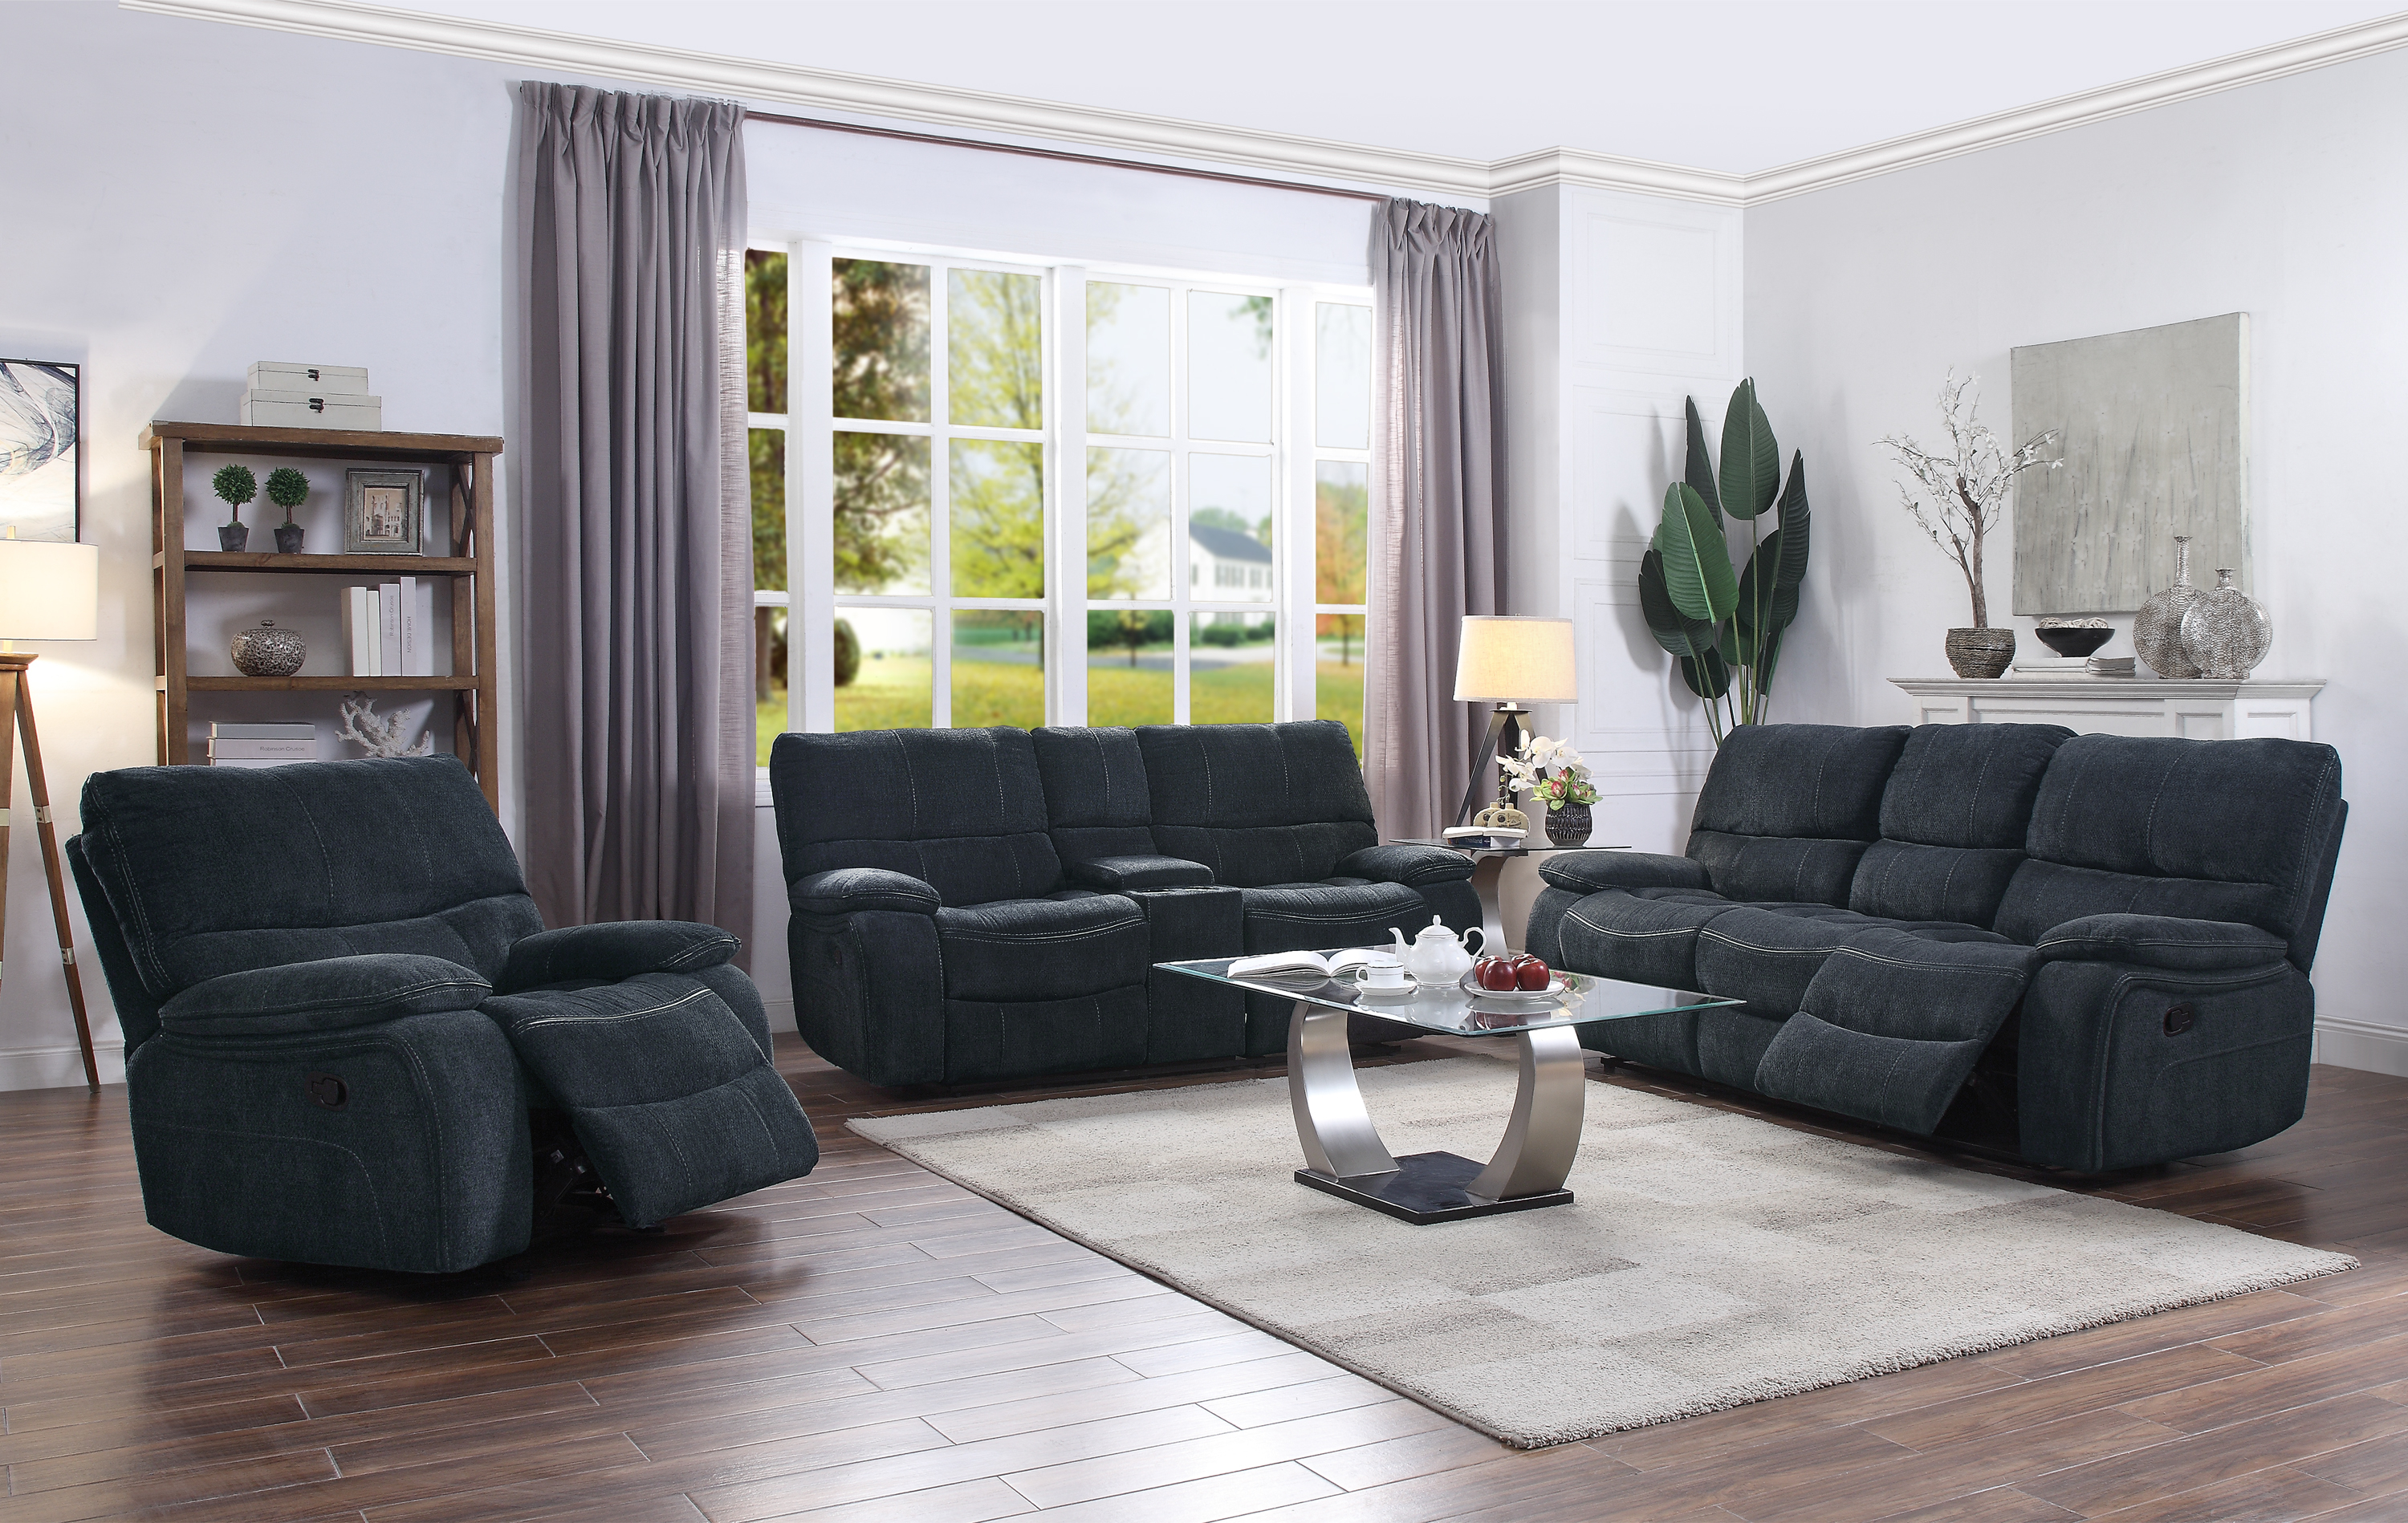 Perry 2 Piece Upholstered Living Room Set Navy Blue Coaster Fine inside Upholstered Living Room Sets